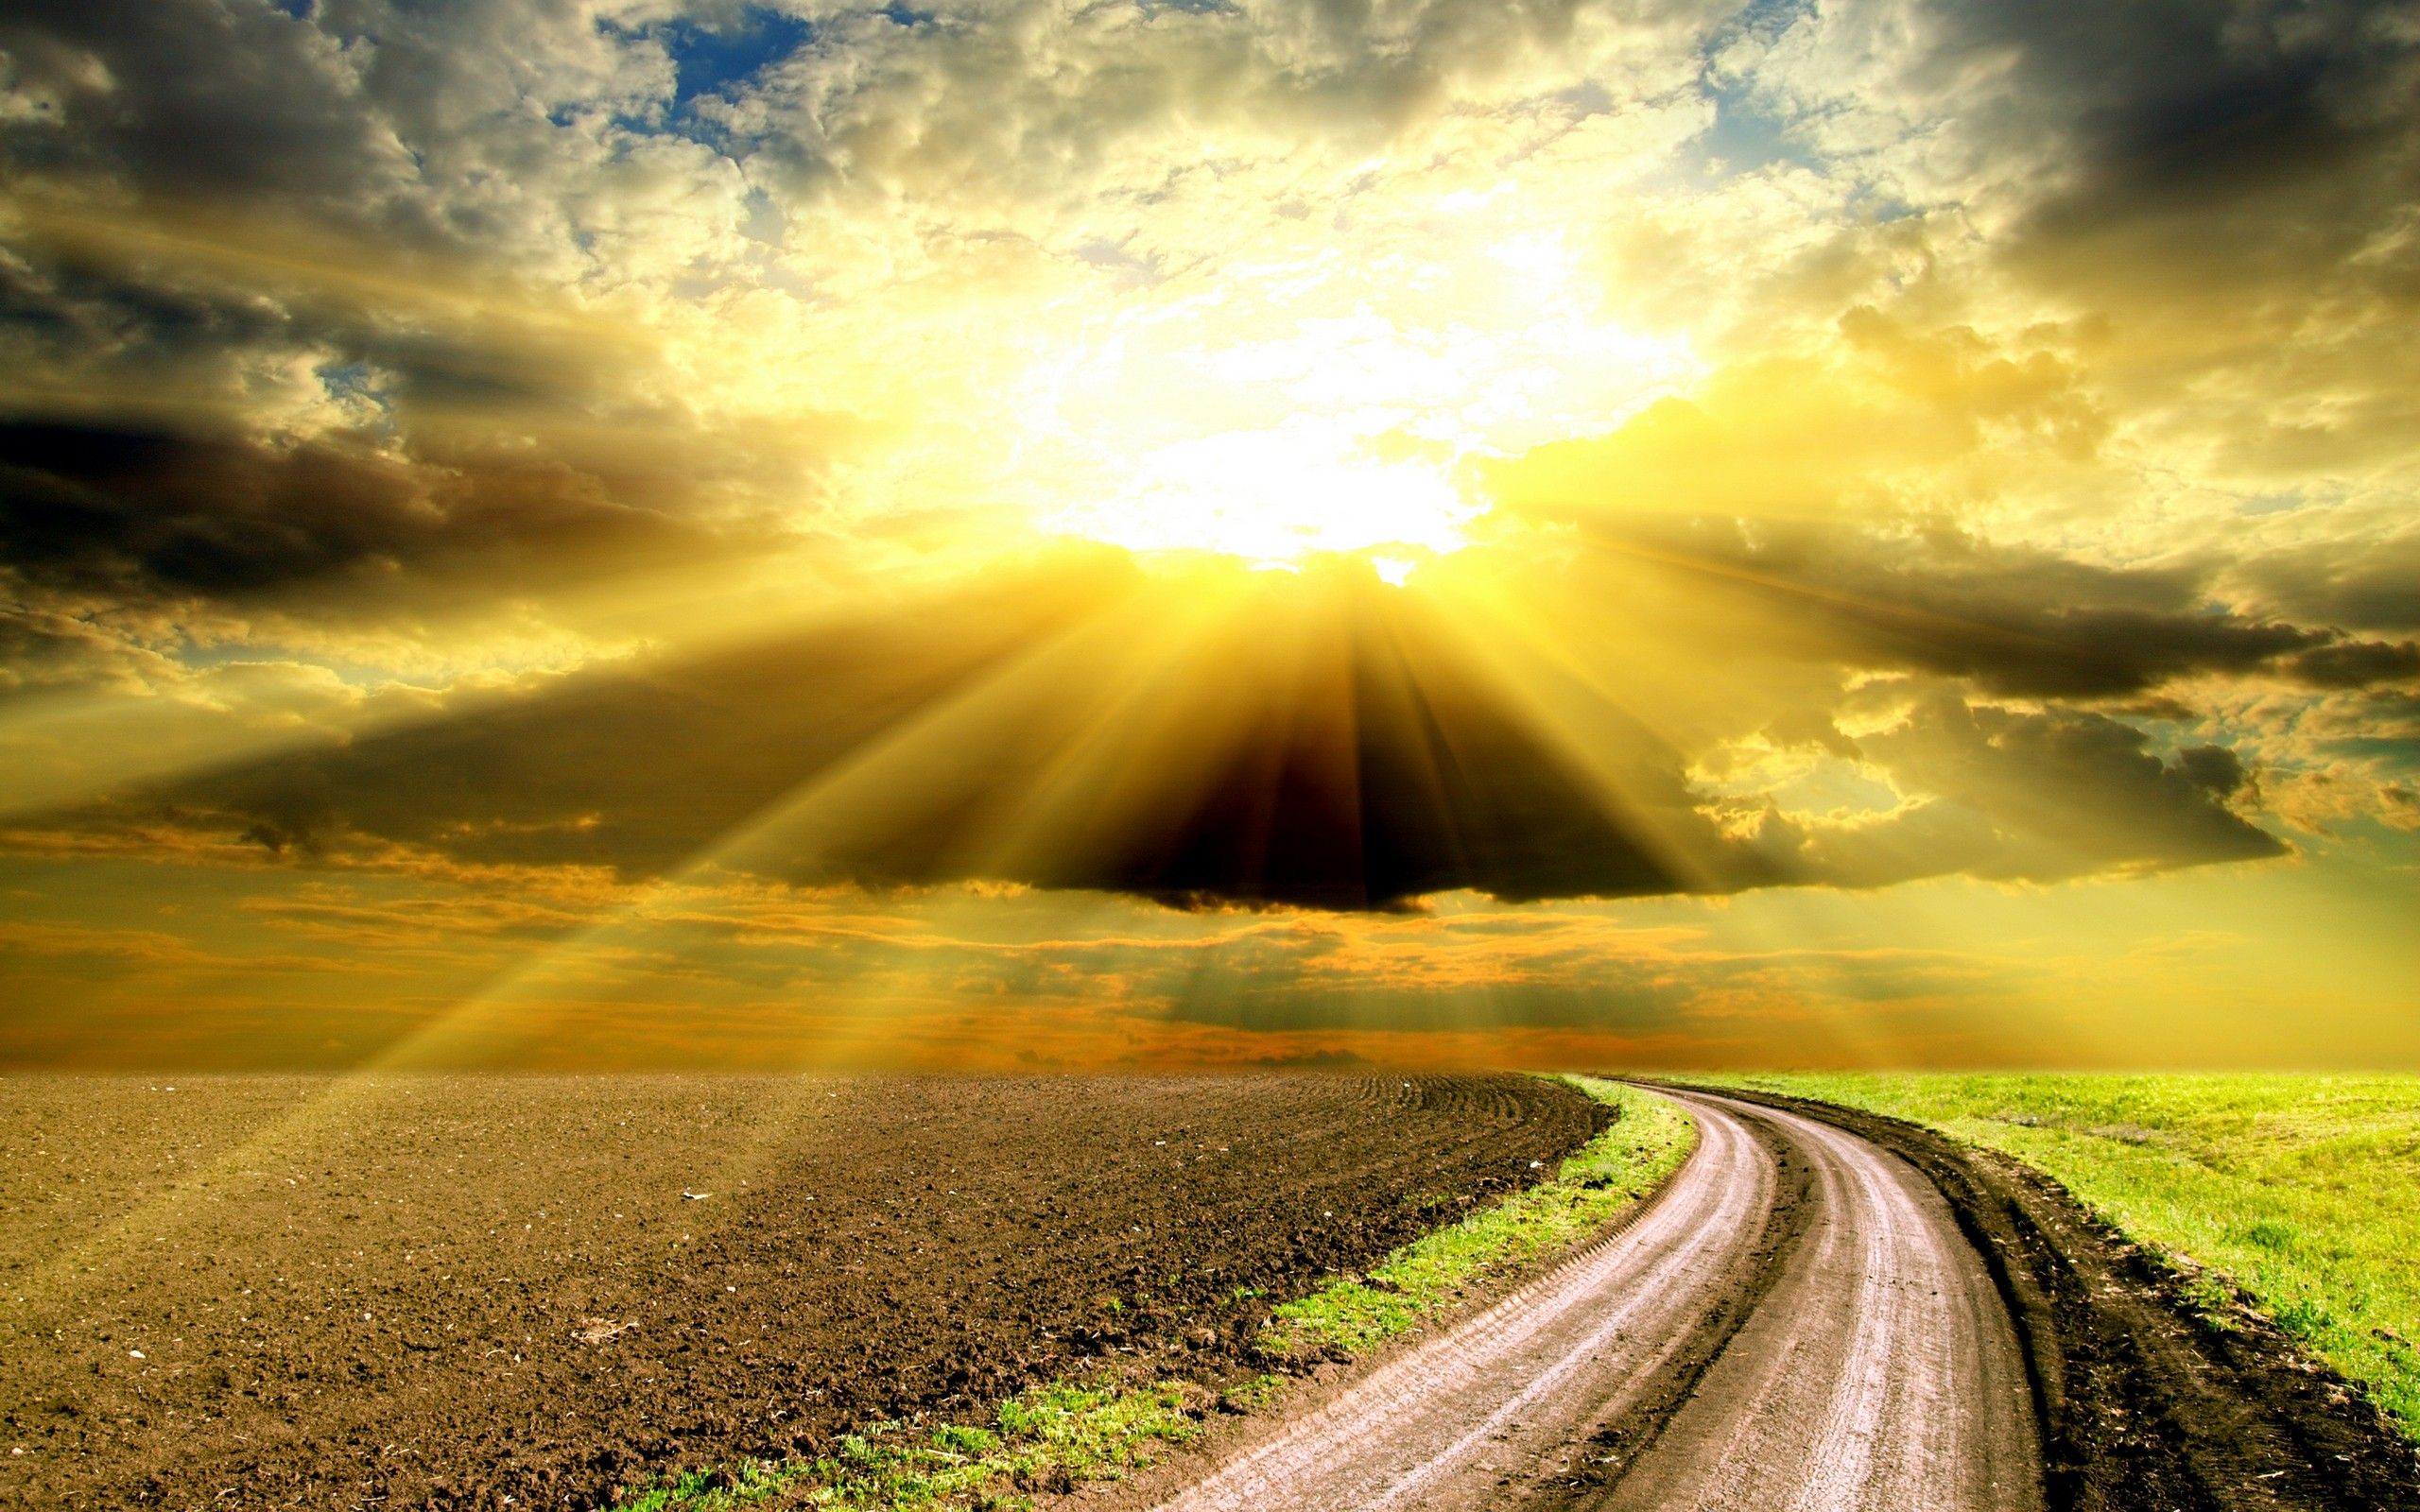 Sunlight pictures wallpaper 2560x1600 68954 - Stunning wallpaper for walls ...